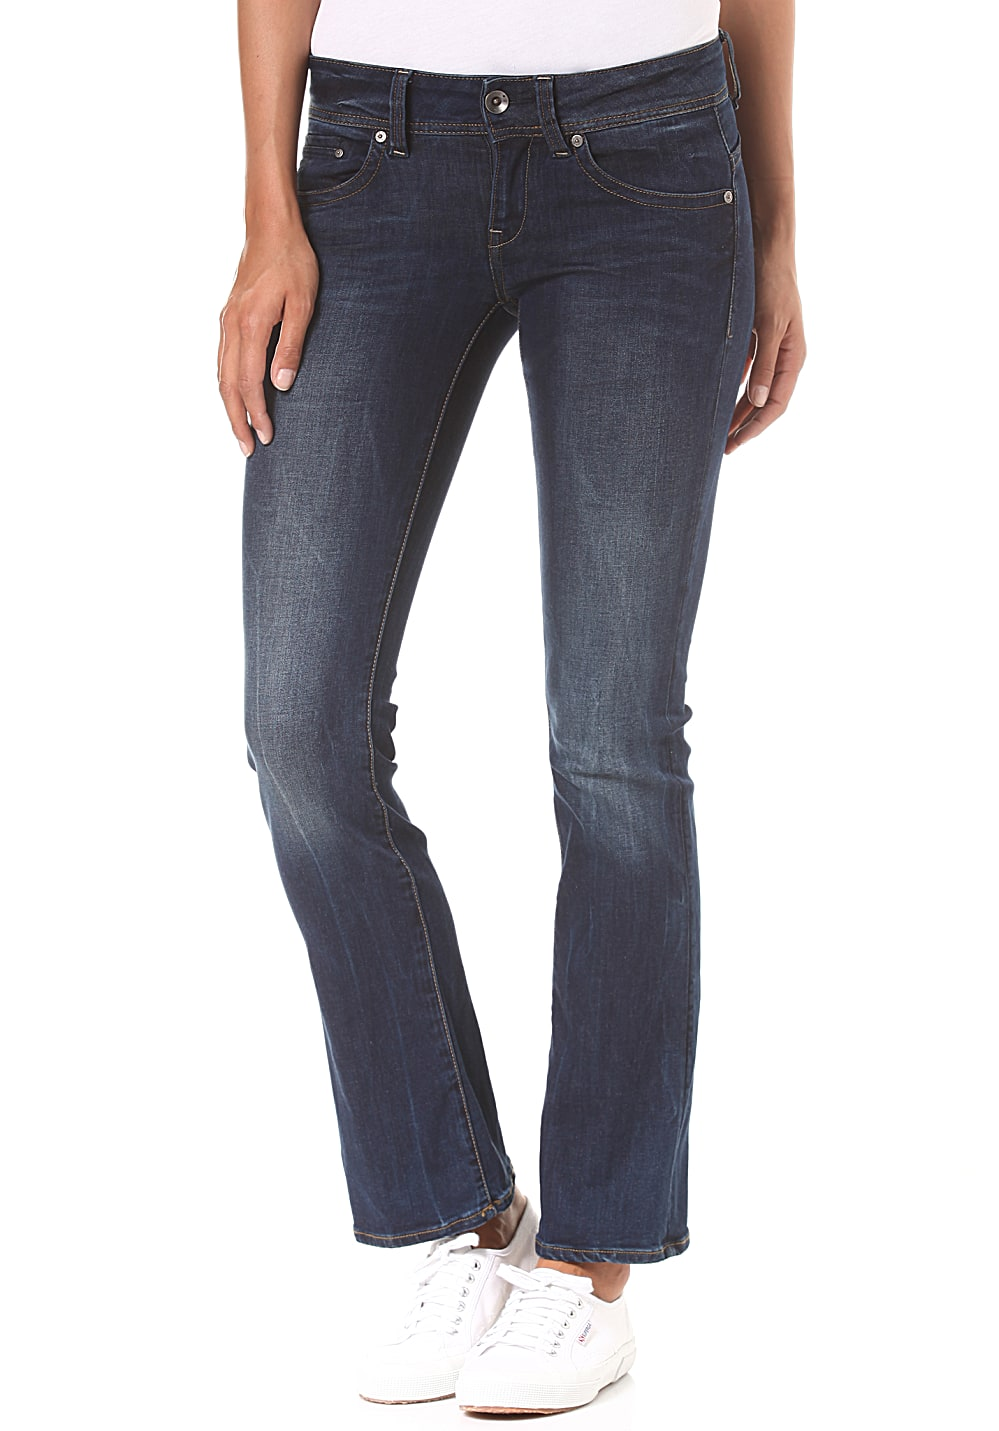 G-STAR RAW Midge Saddle Mid Skinny Bootcut Neutro Stretch - Jeans für Damen - Blau